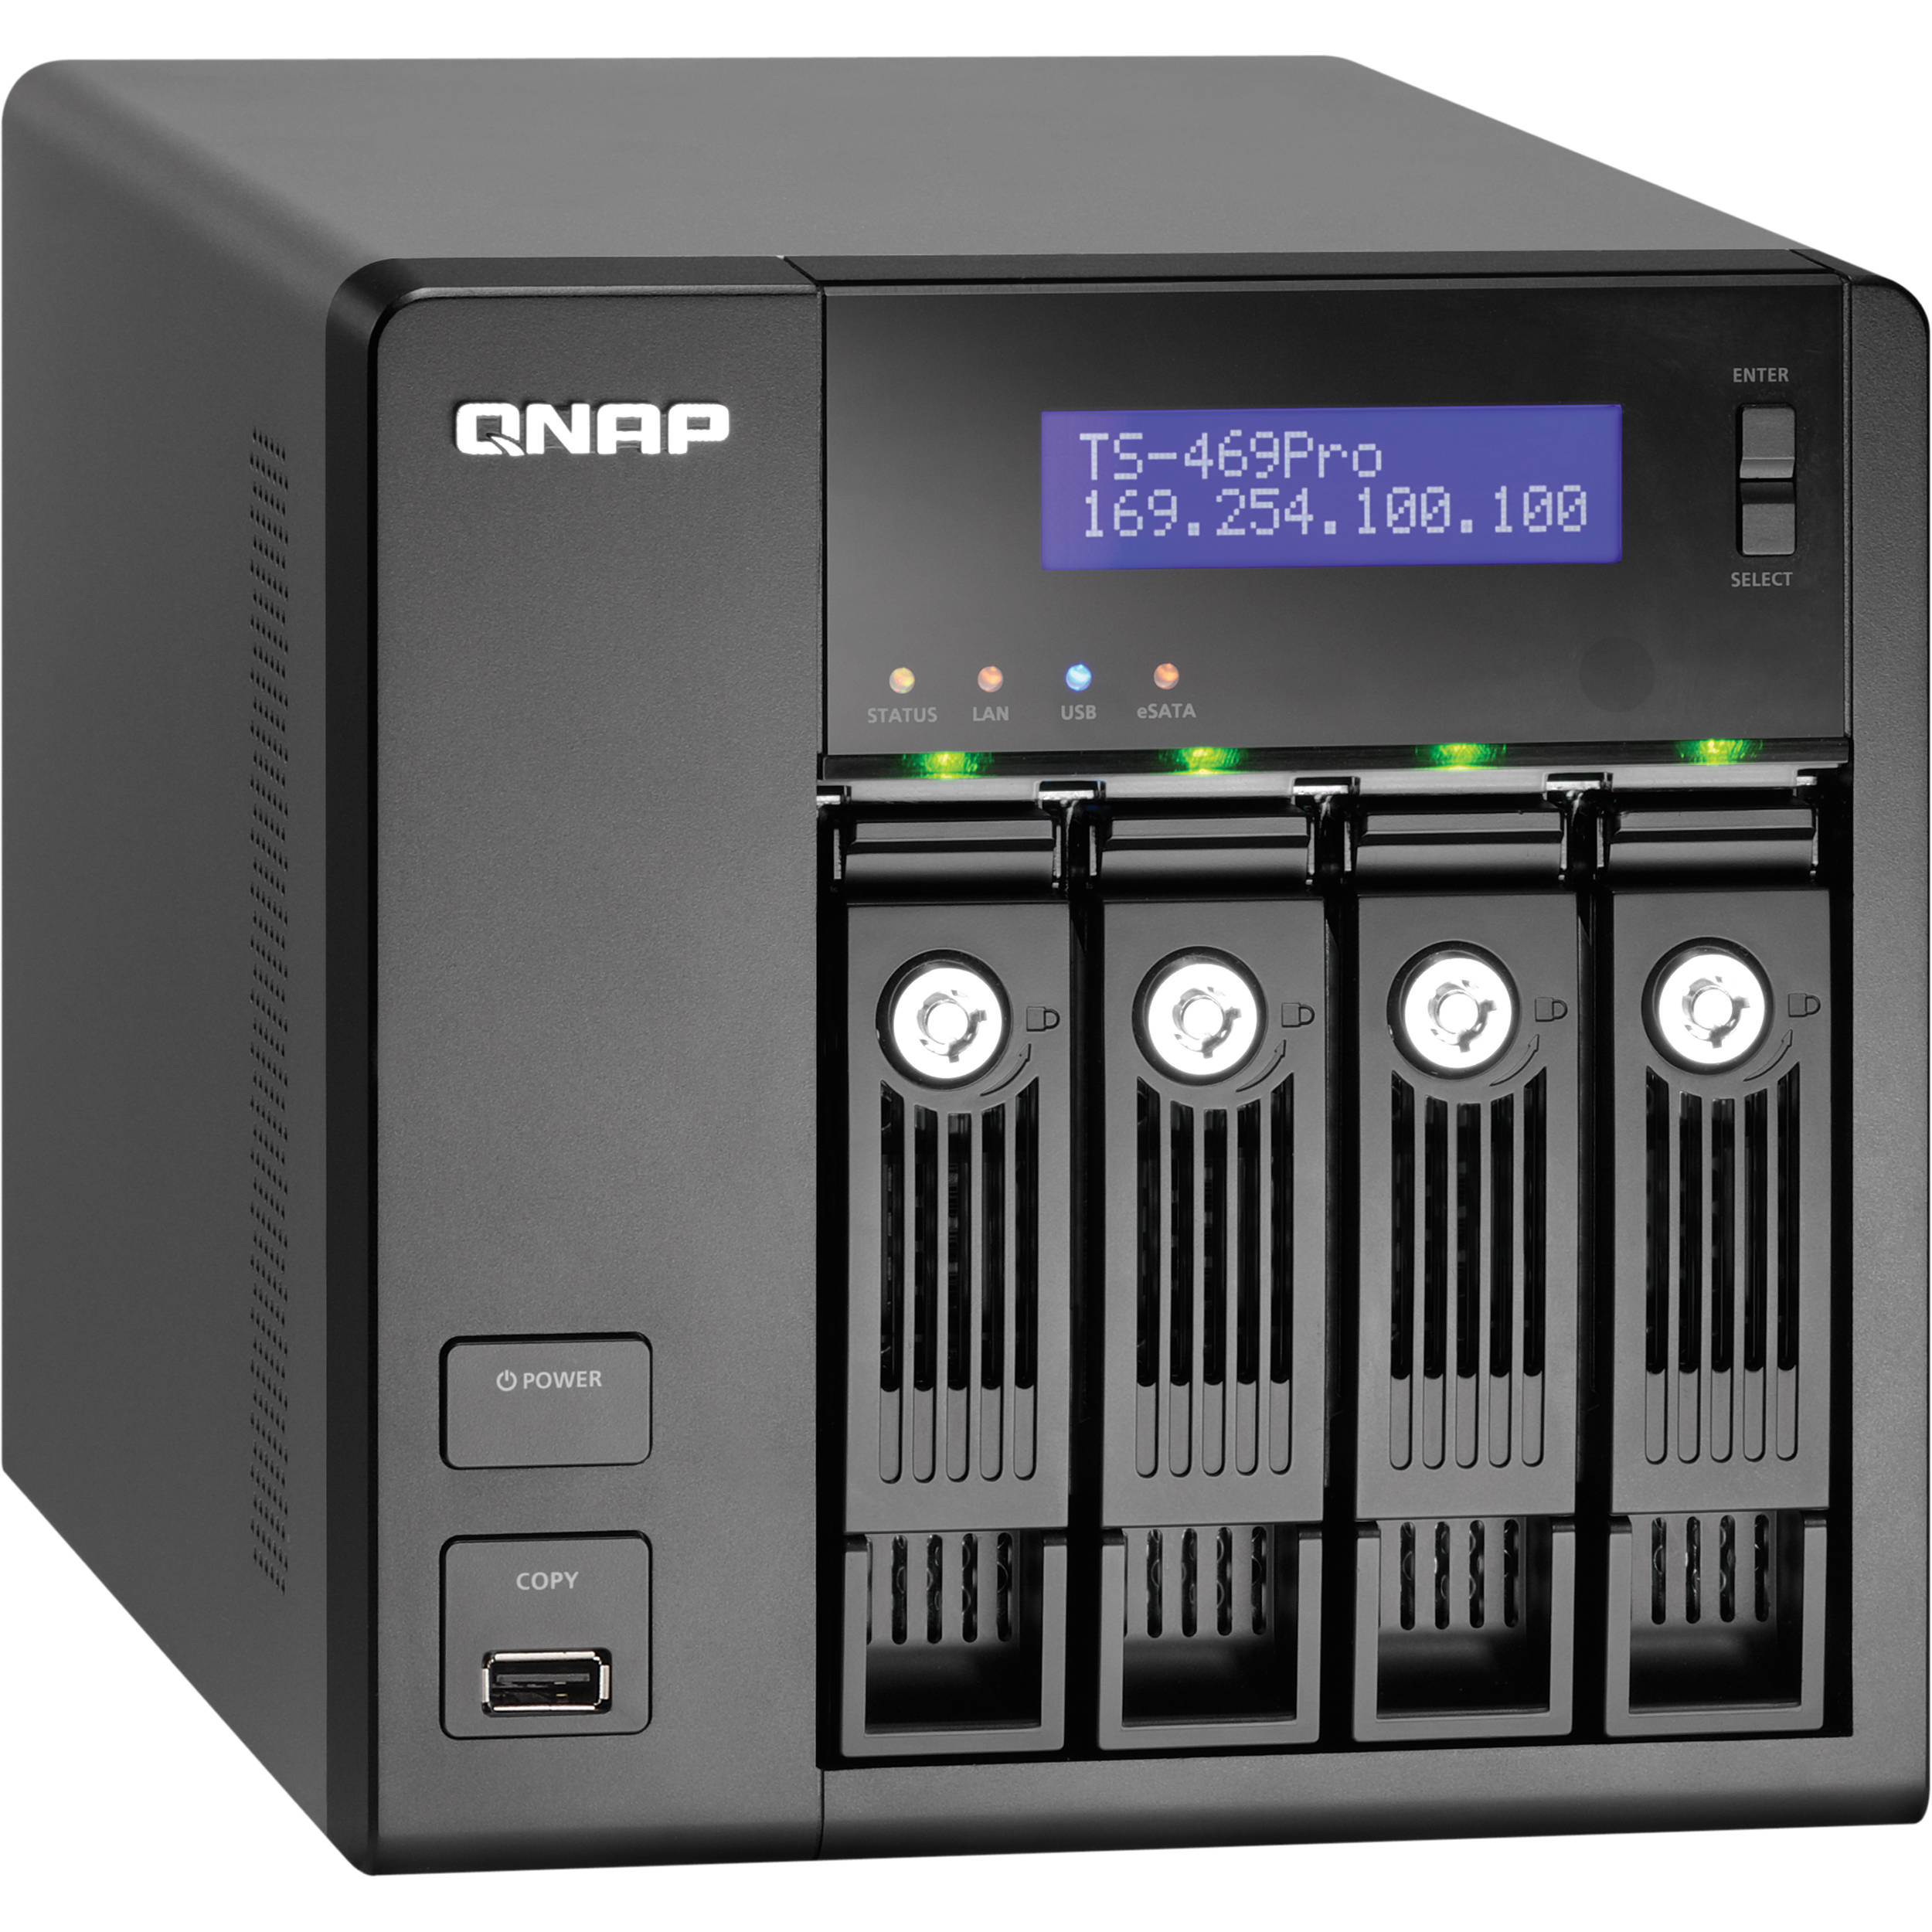 QNAP TS-469PRO TURBO NAS WINDOWS 8.1 DRIVERS DOWNLOAD